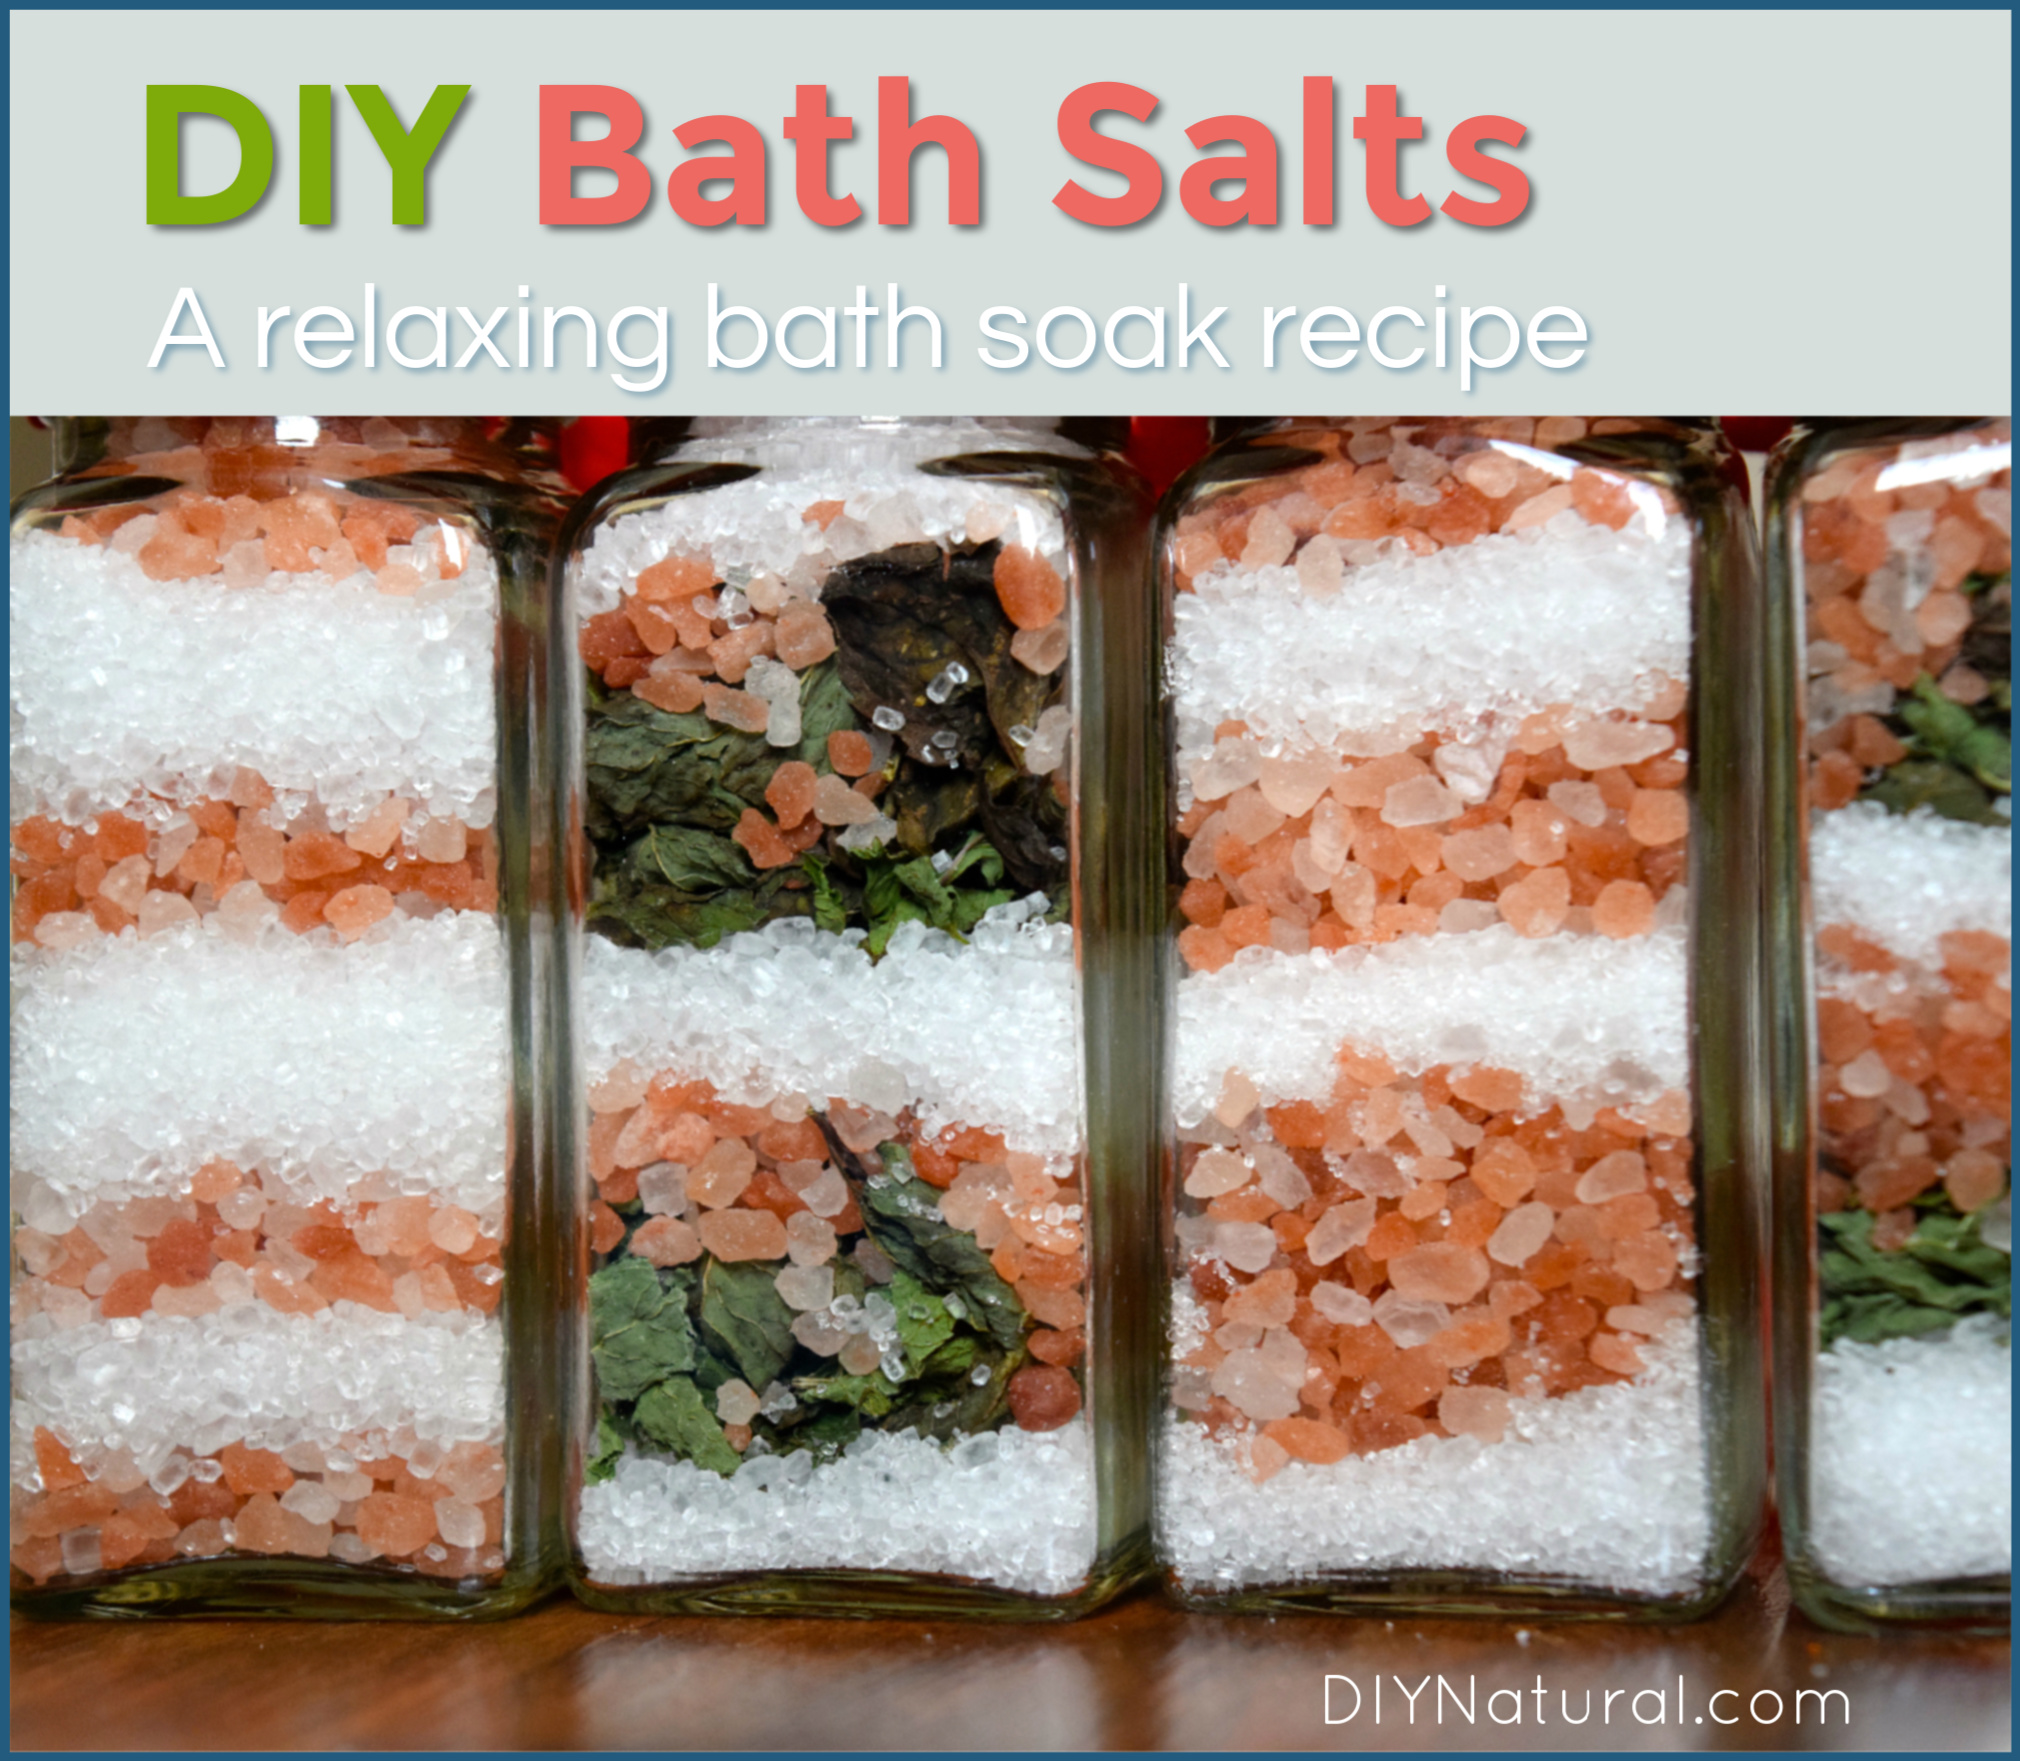 DIY Bath Salts: A Homemade Bath Soak